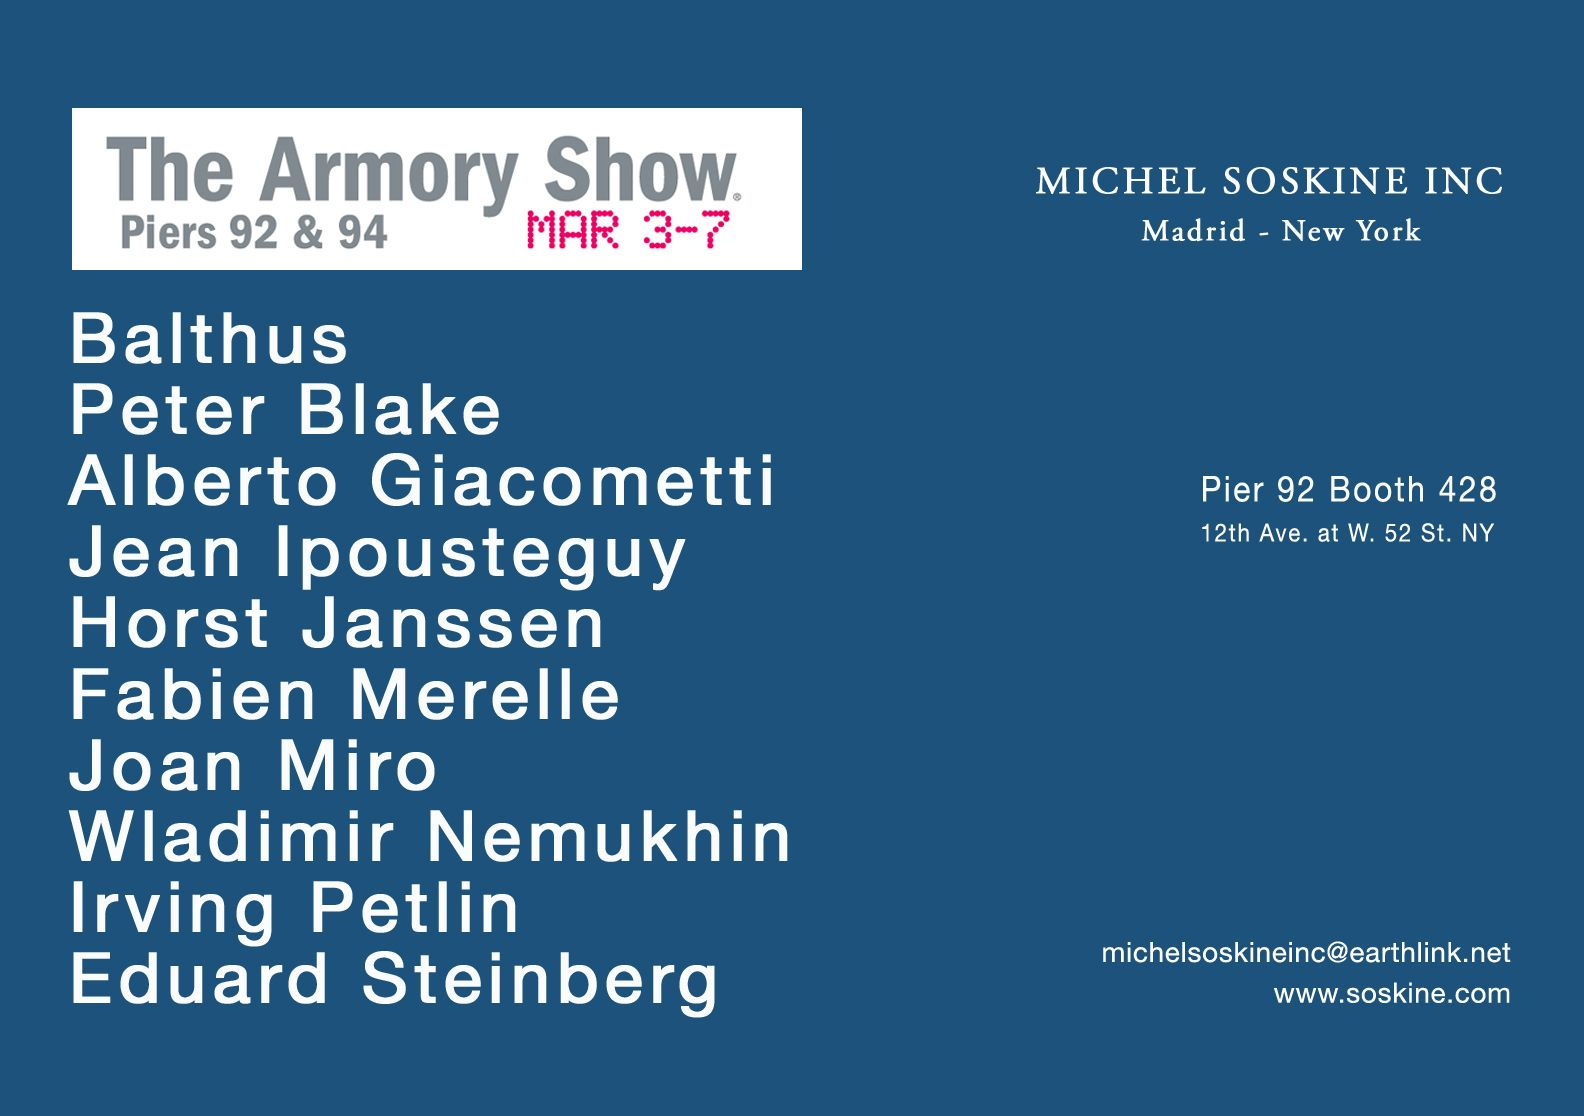 THE ARMORY SHOW- New York